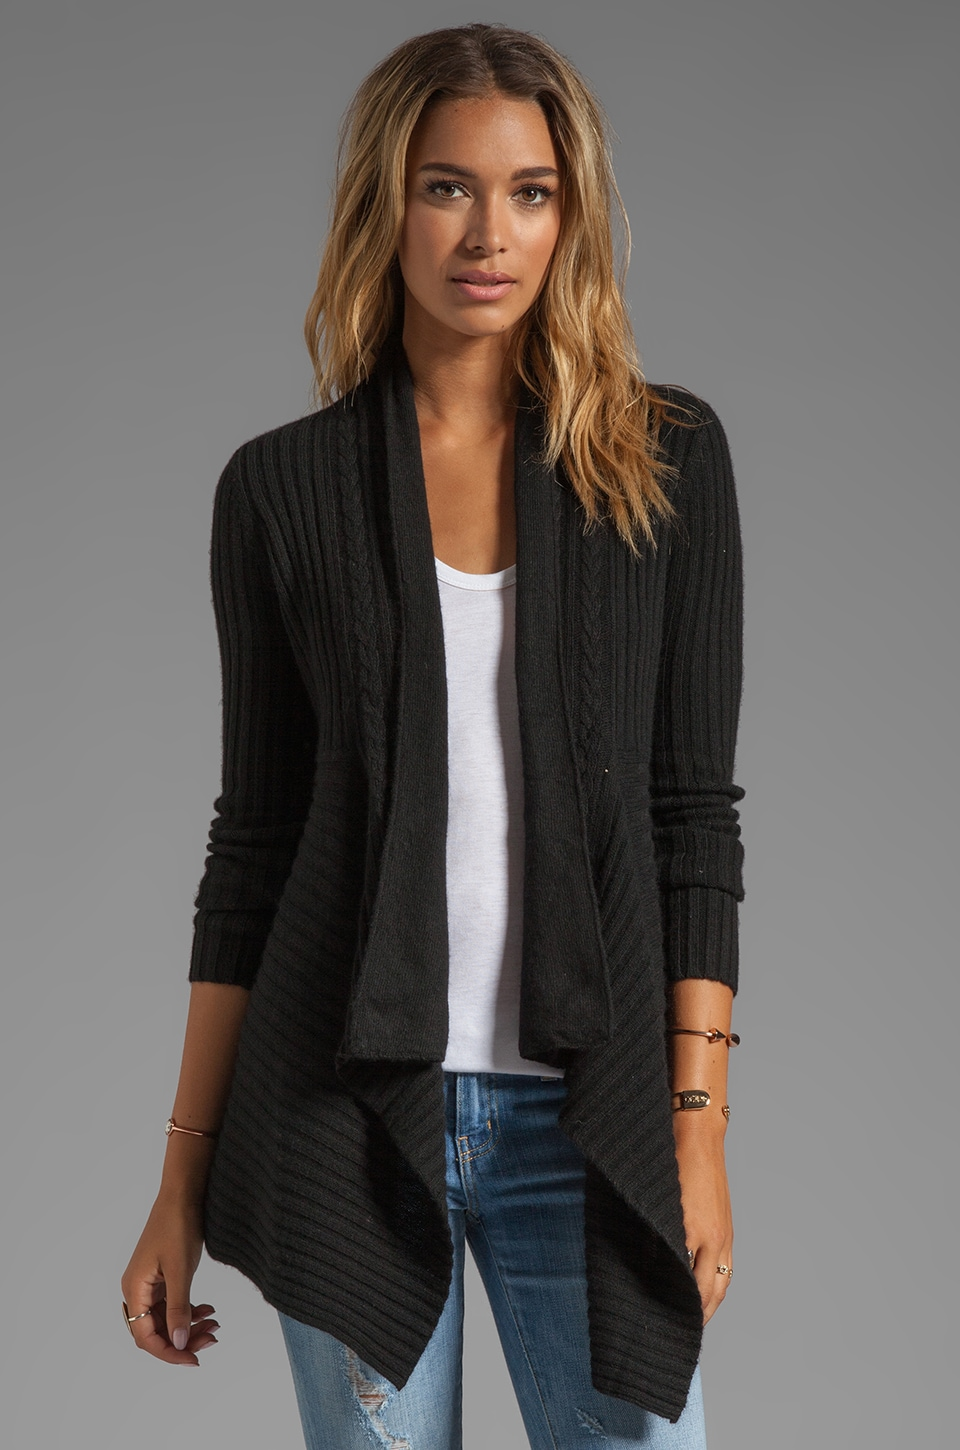 Autumn Cashmere New Rib Drape With Cable Cardigan in Ebony